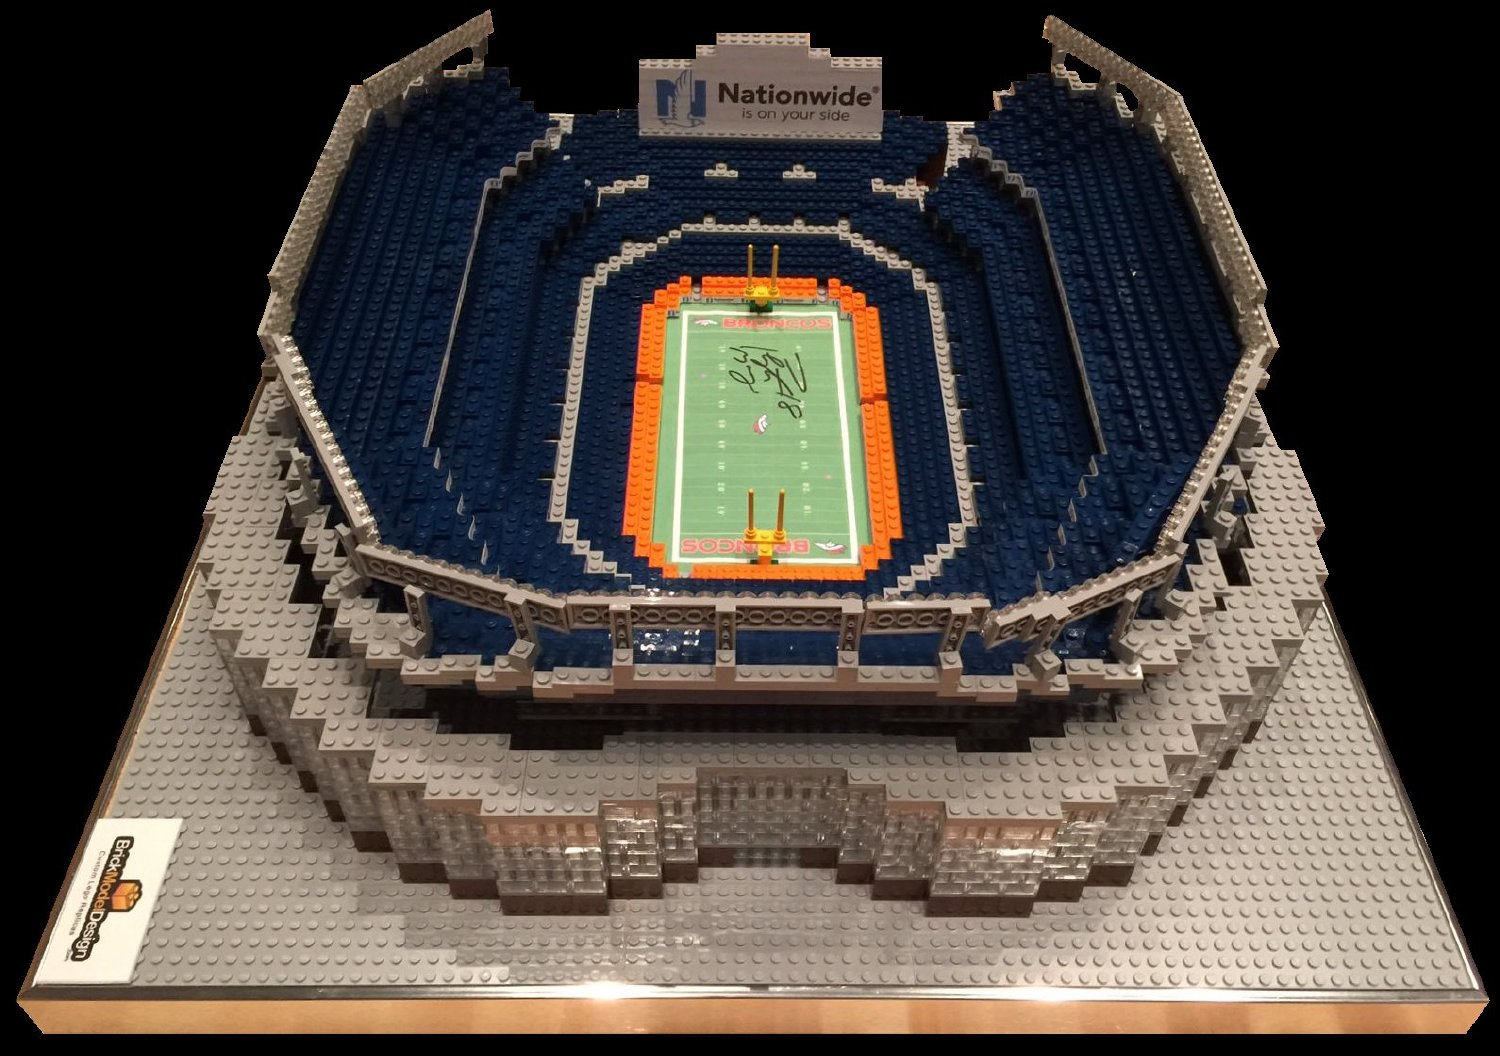 Lego Replica of Denver Broncos Stadium